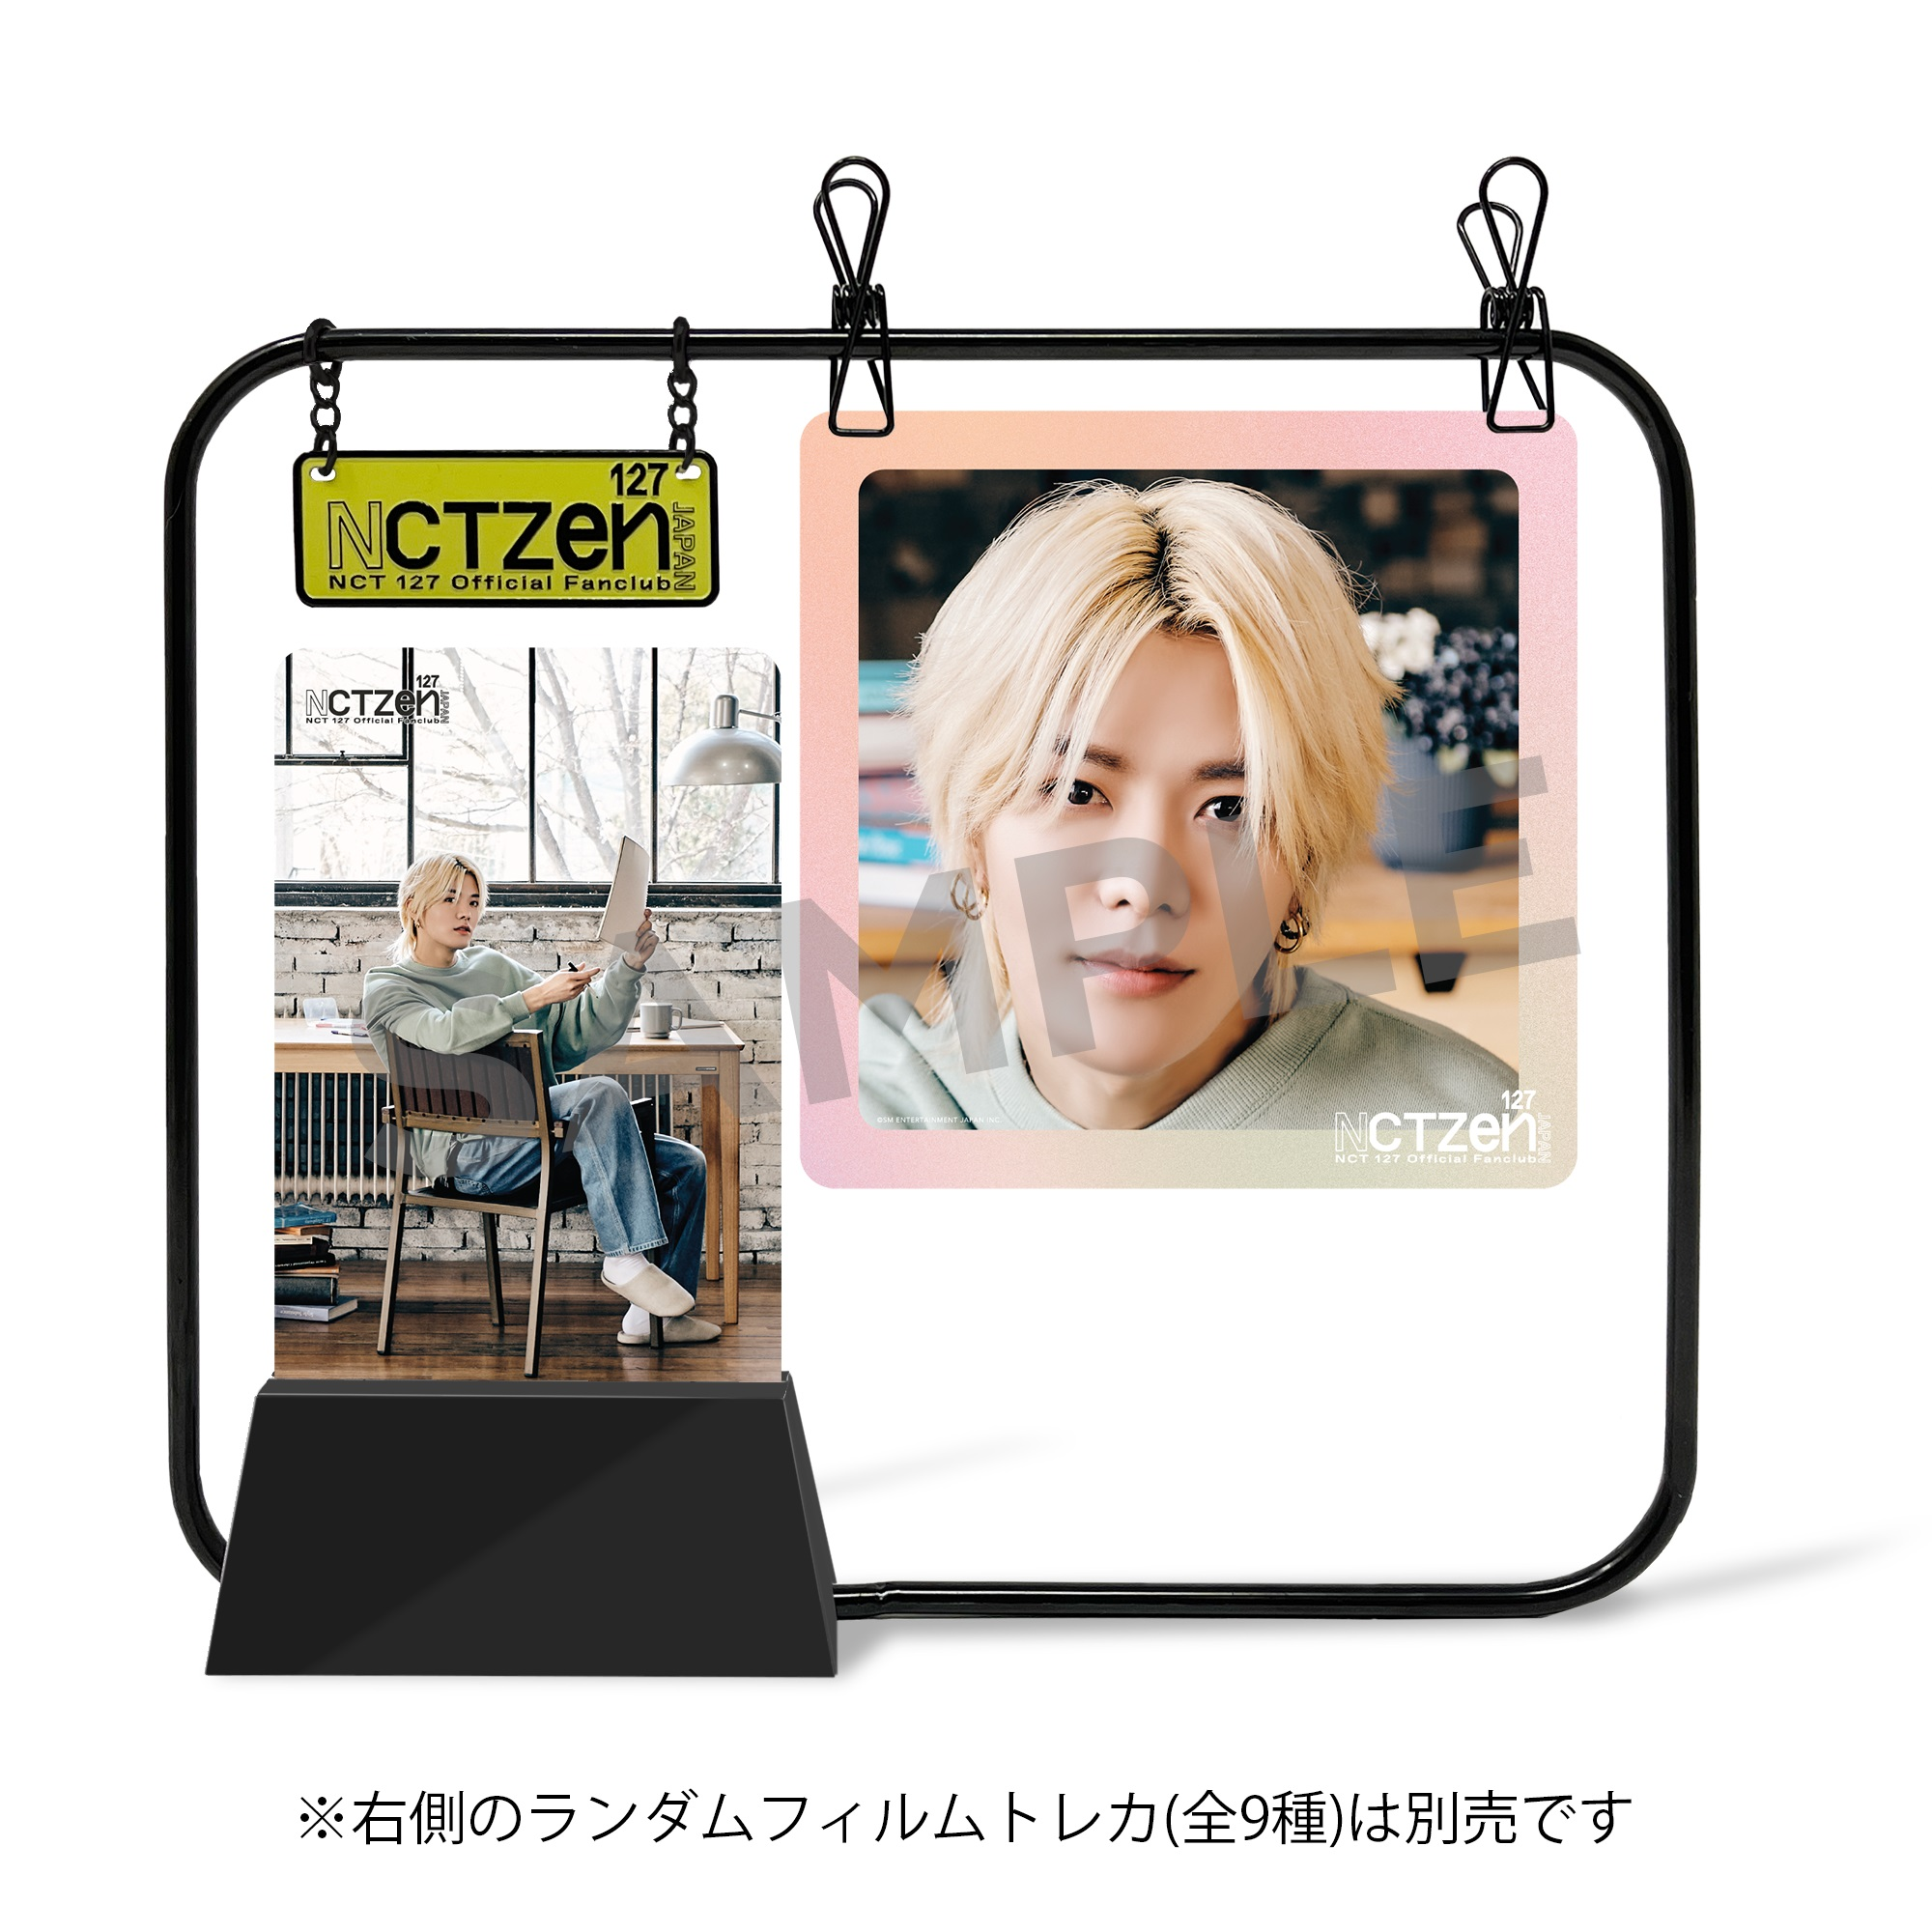 【NCT 127】『NCT 127 OFFICIAL BOOK Vol.4』グッズを、メンバー別に詳しく紹介!_5_3